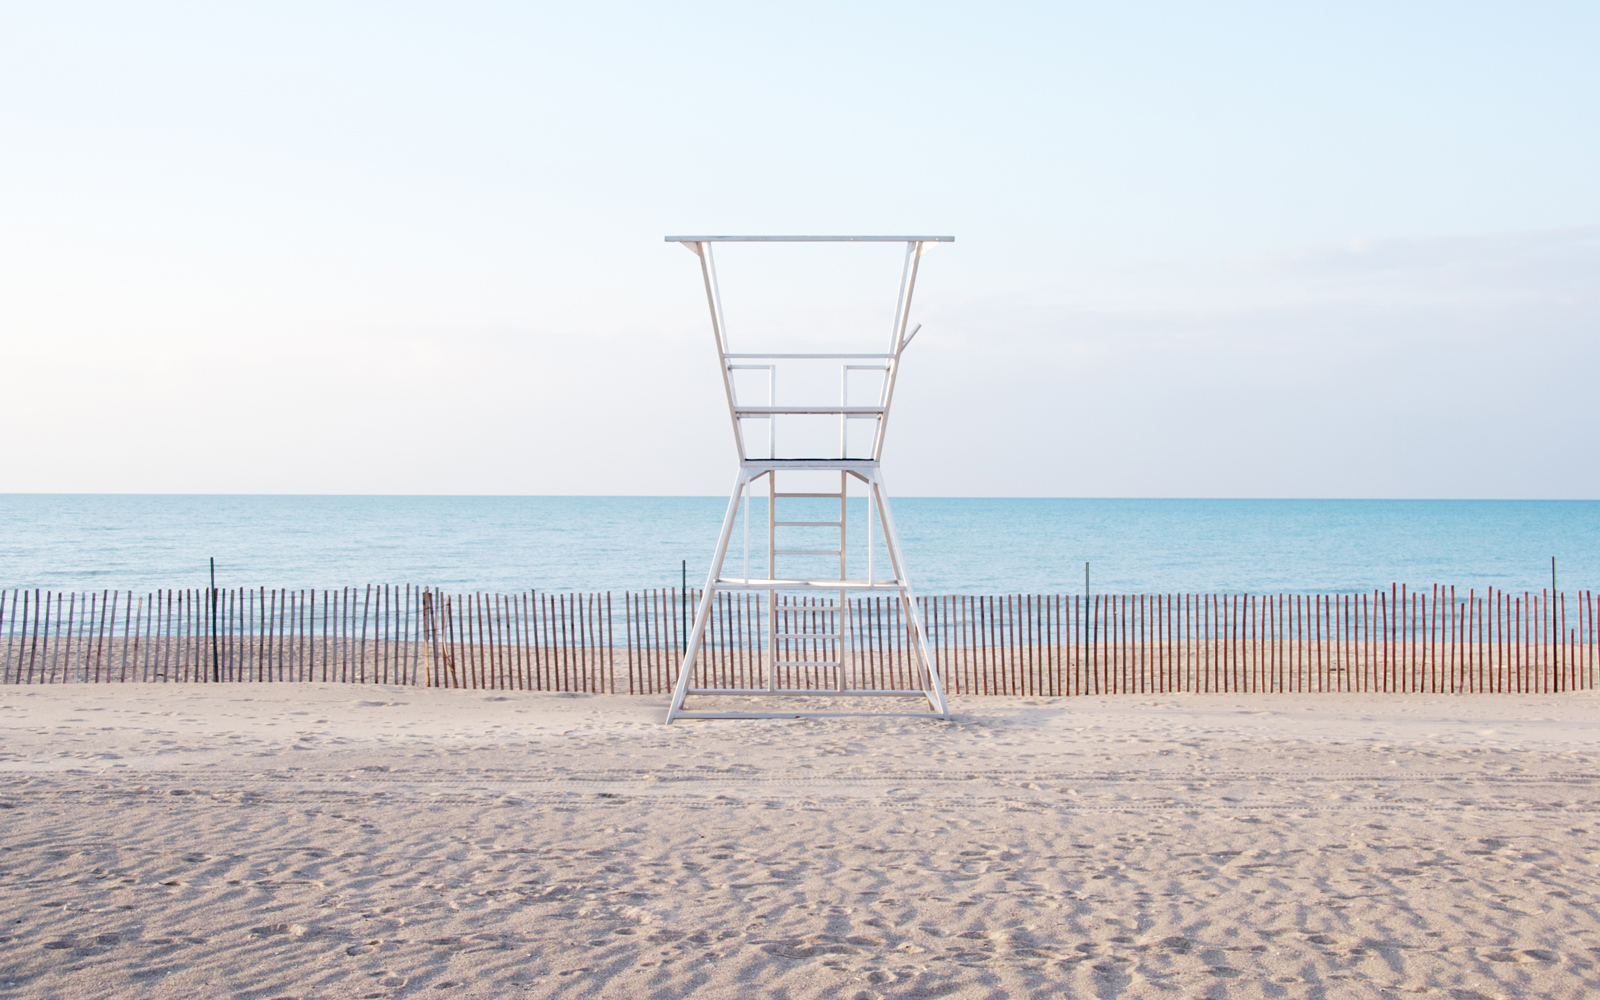 Lifeguard stand at Lake